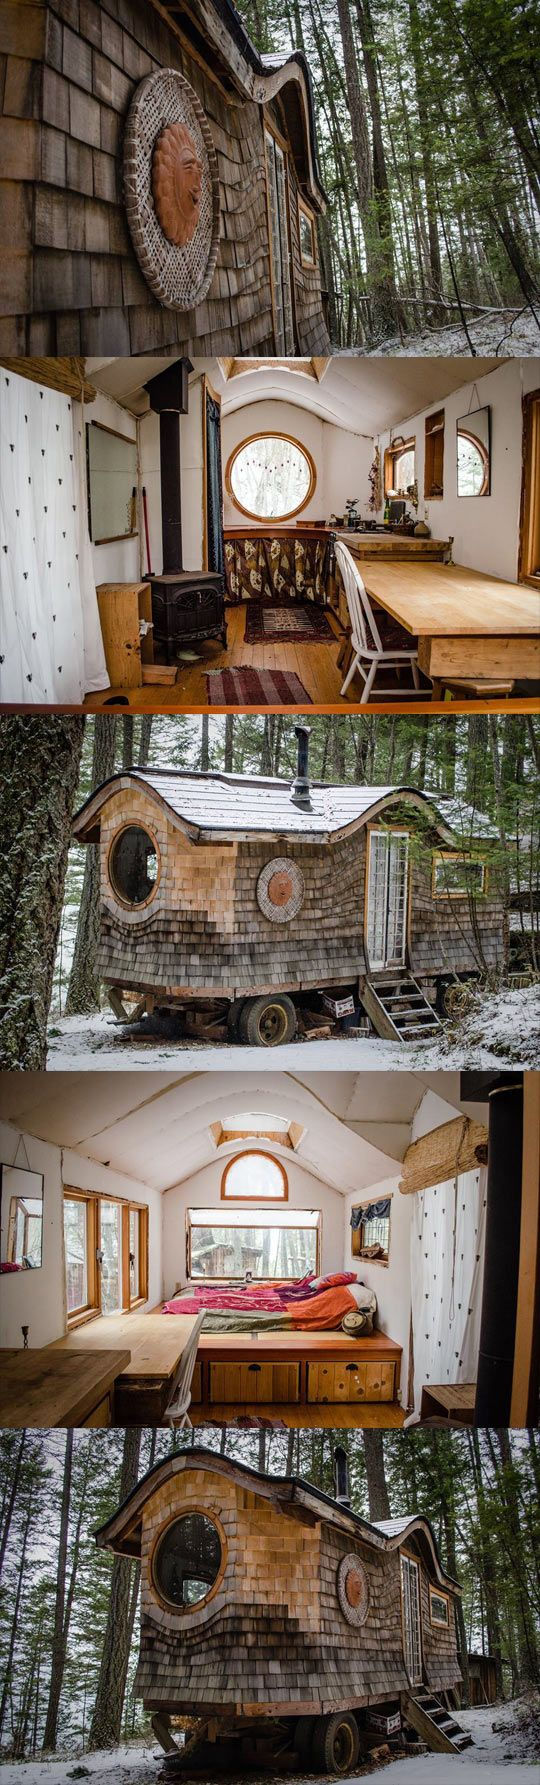 Just a tiny home...